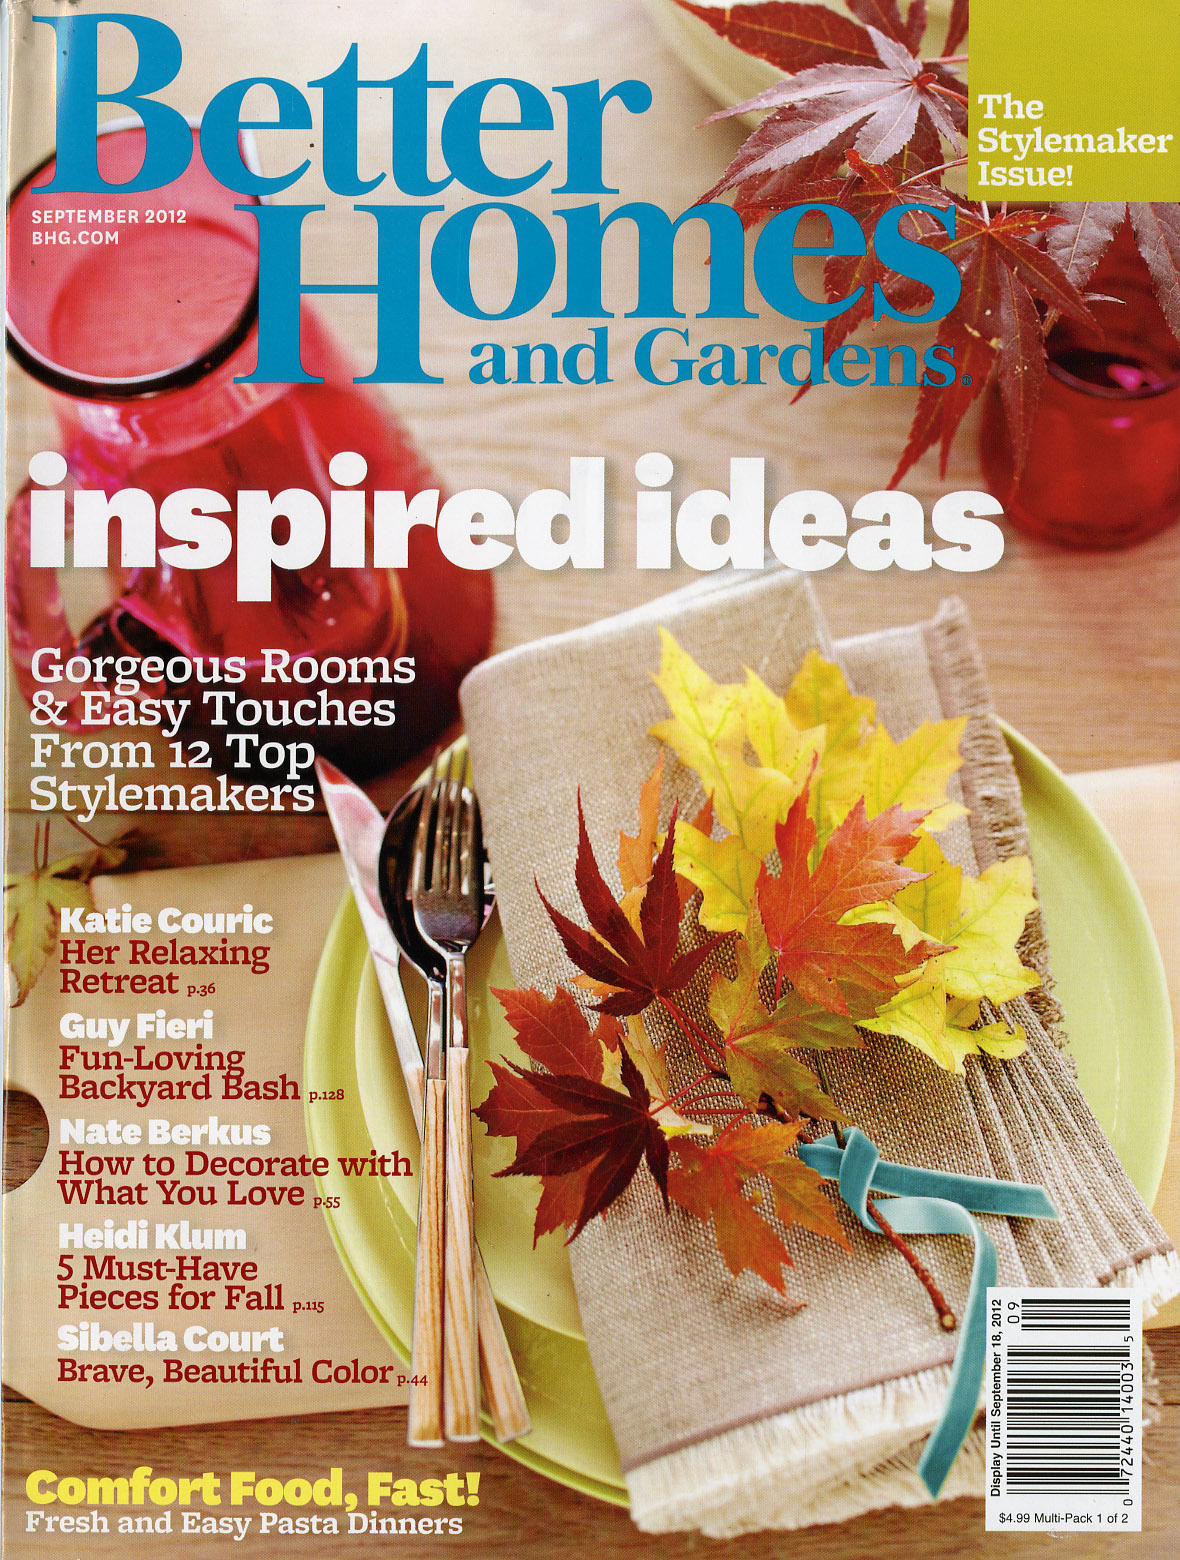 Home Decoration Magazine a sign of the times: from better to good to ??? a new direction